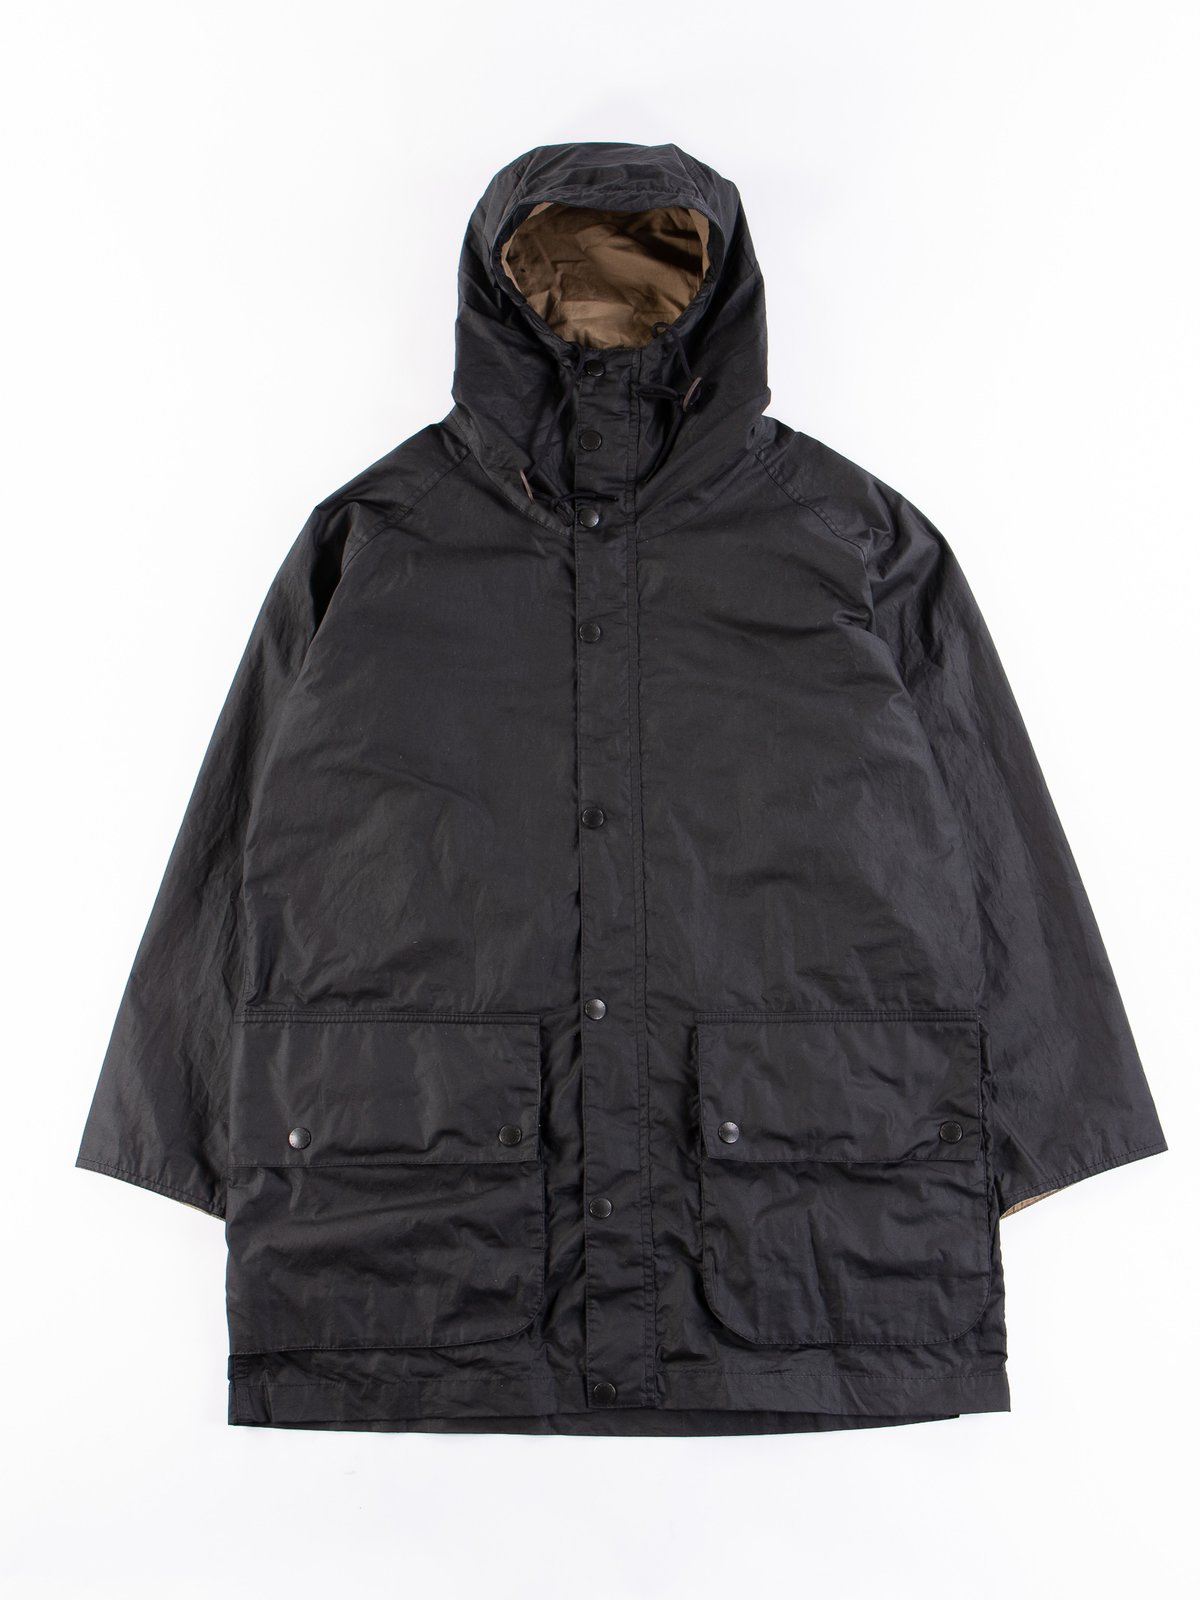 Black Hiking Waxed Cotton Jacket - Image 1